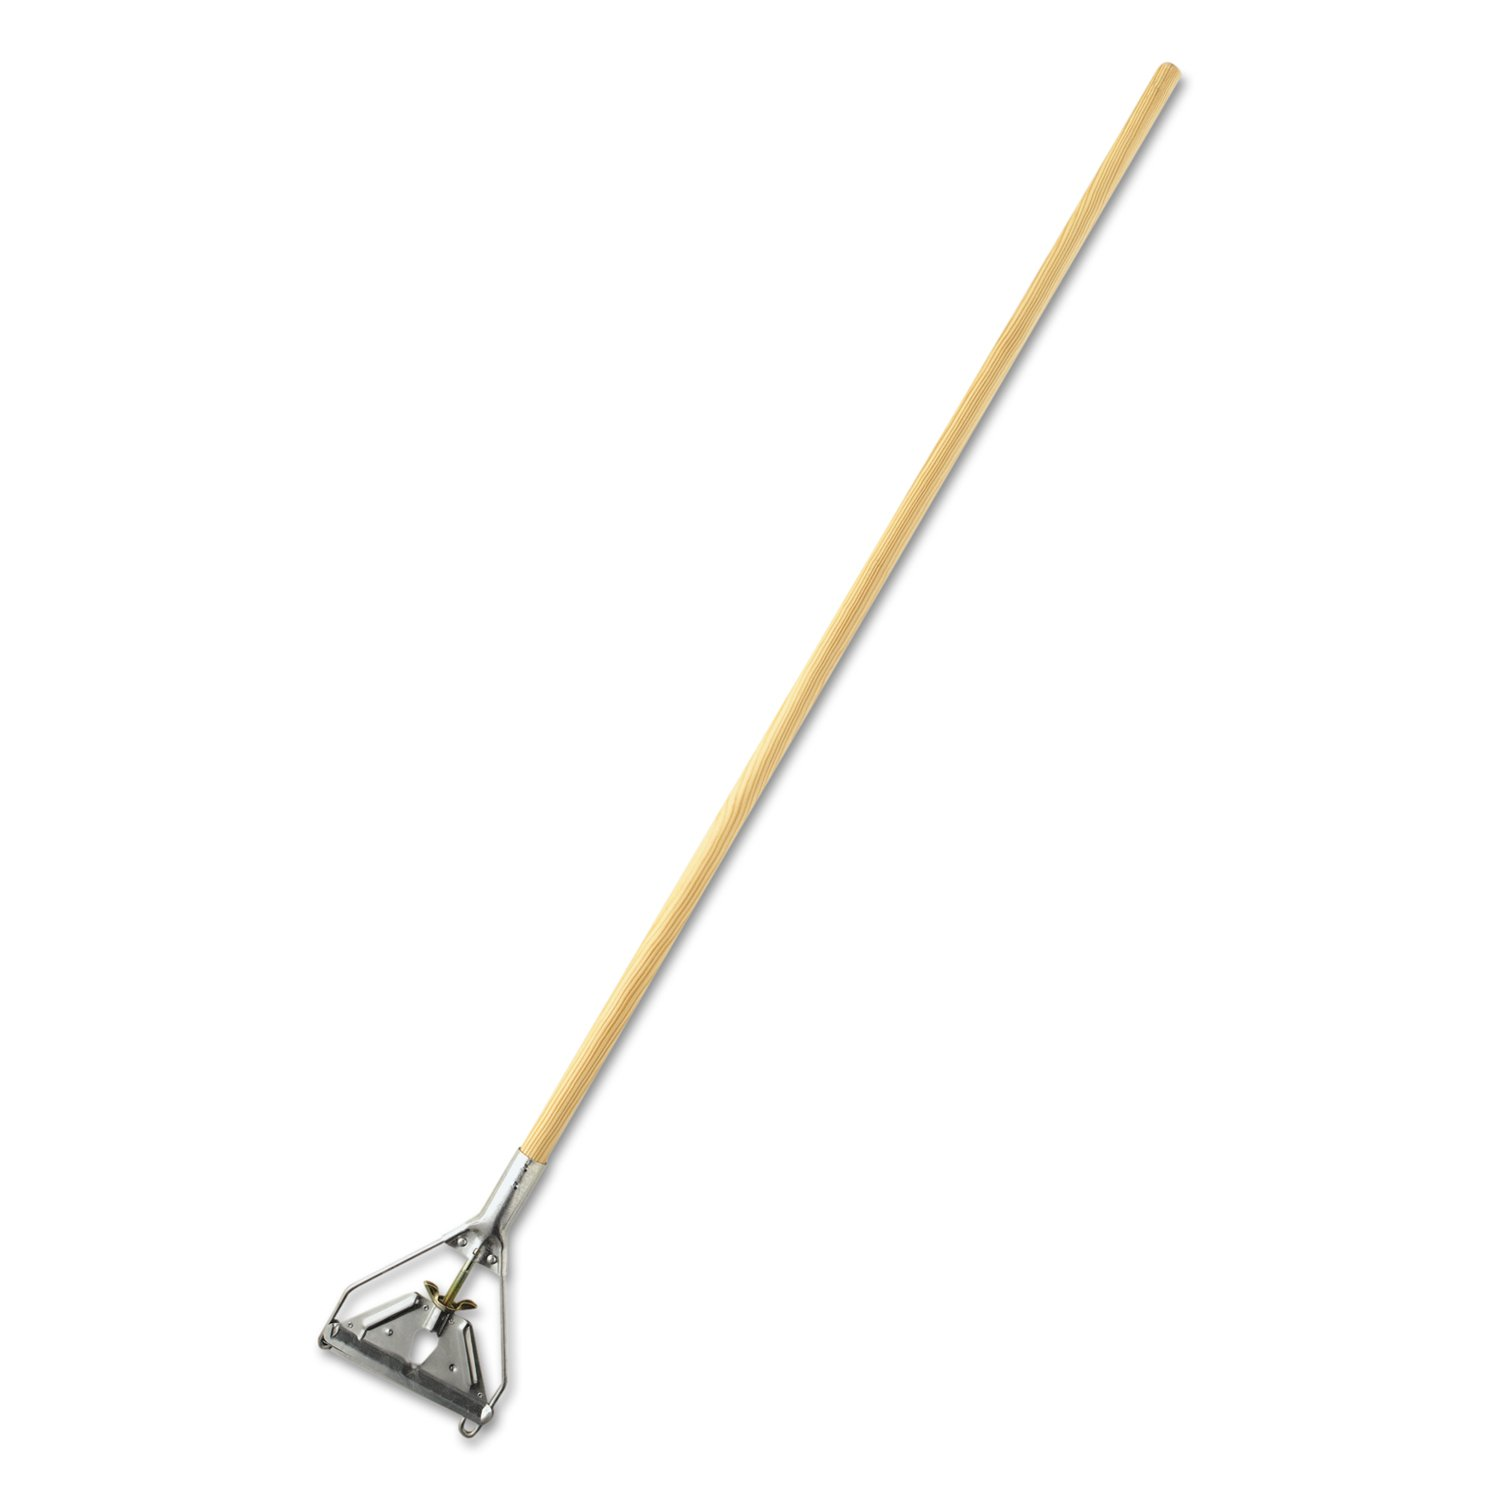 Rubbermaid Commercial Invader Wet Mop Handle, 60-Inch, FGH516000000